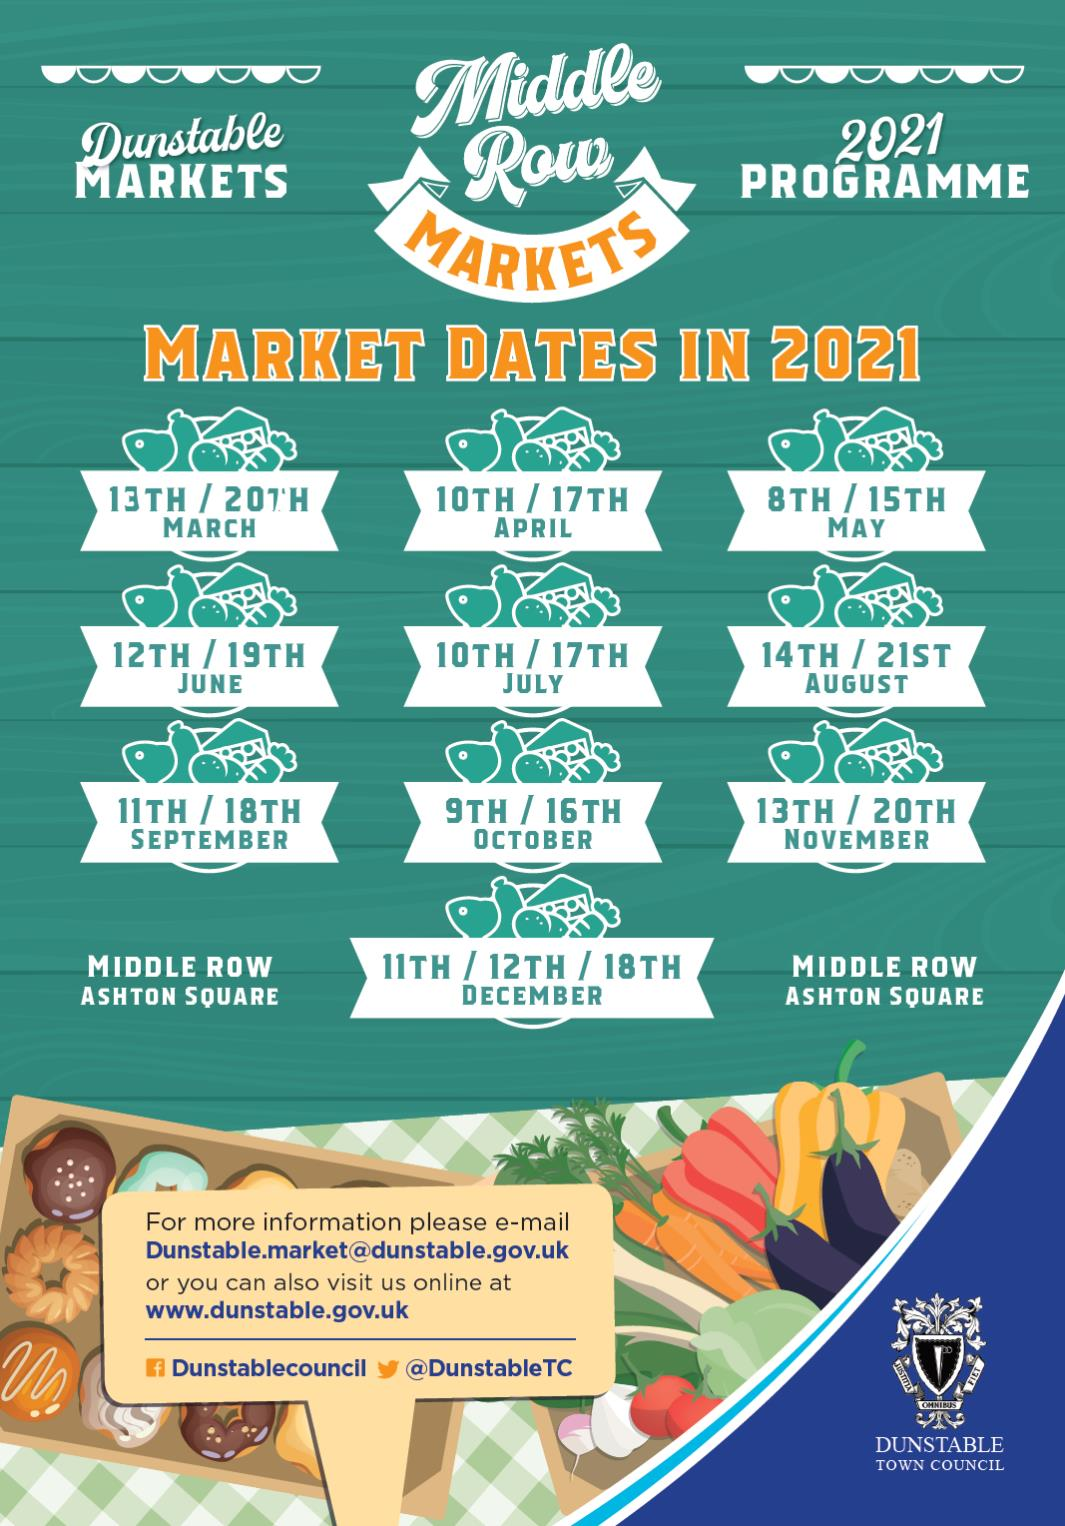 Middle Row Markets - Market Dates for 2021